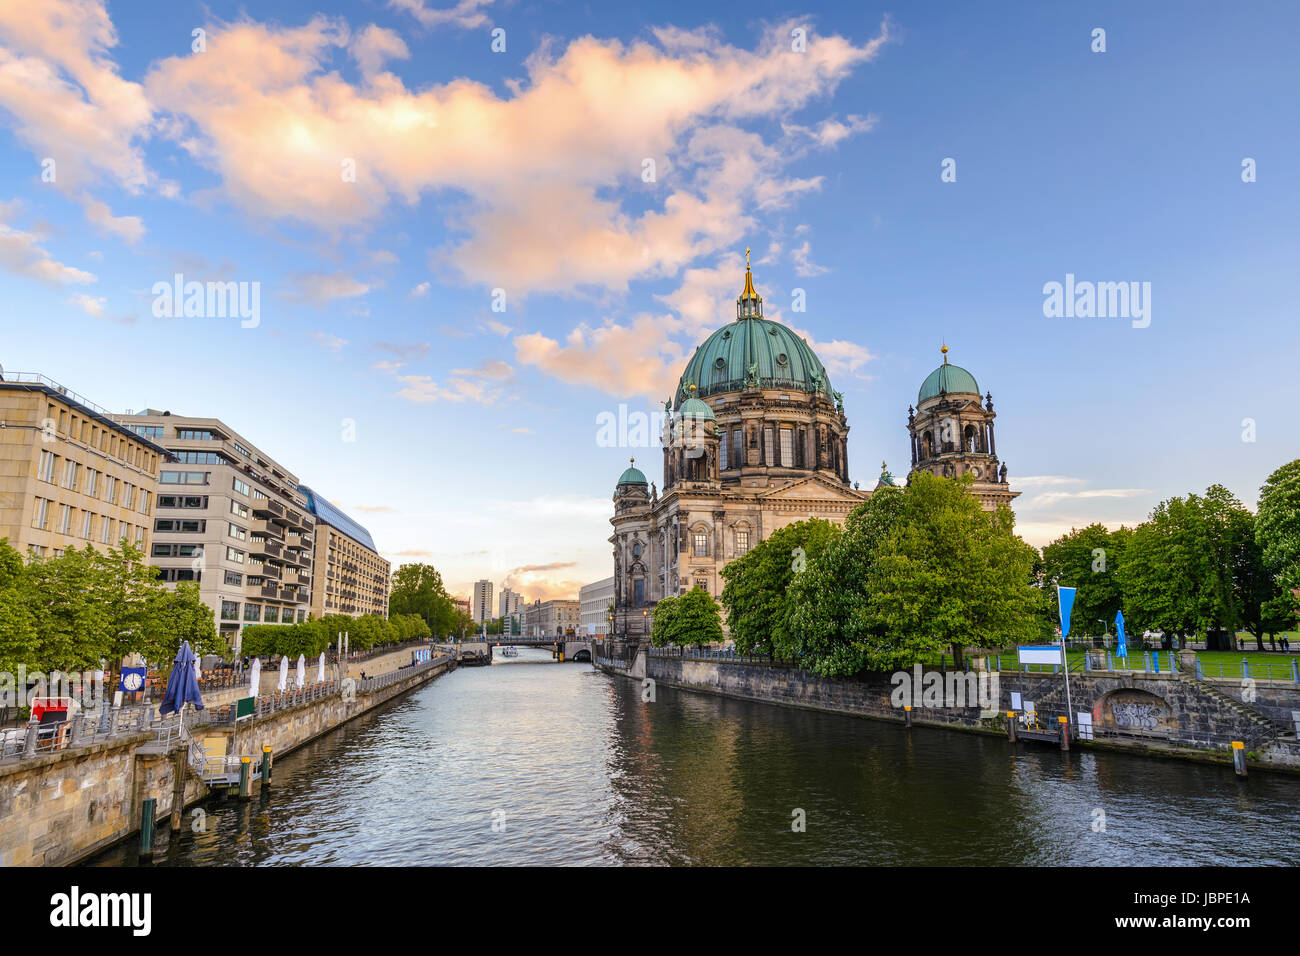 Berlin Cathedral or Berliner Dom when sunset, Berlin, Germany - Stock Image